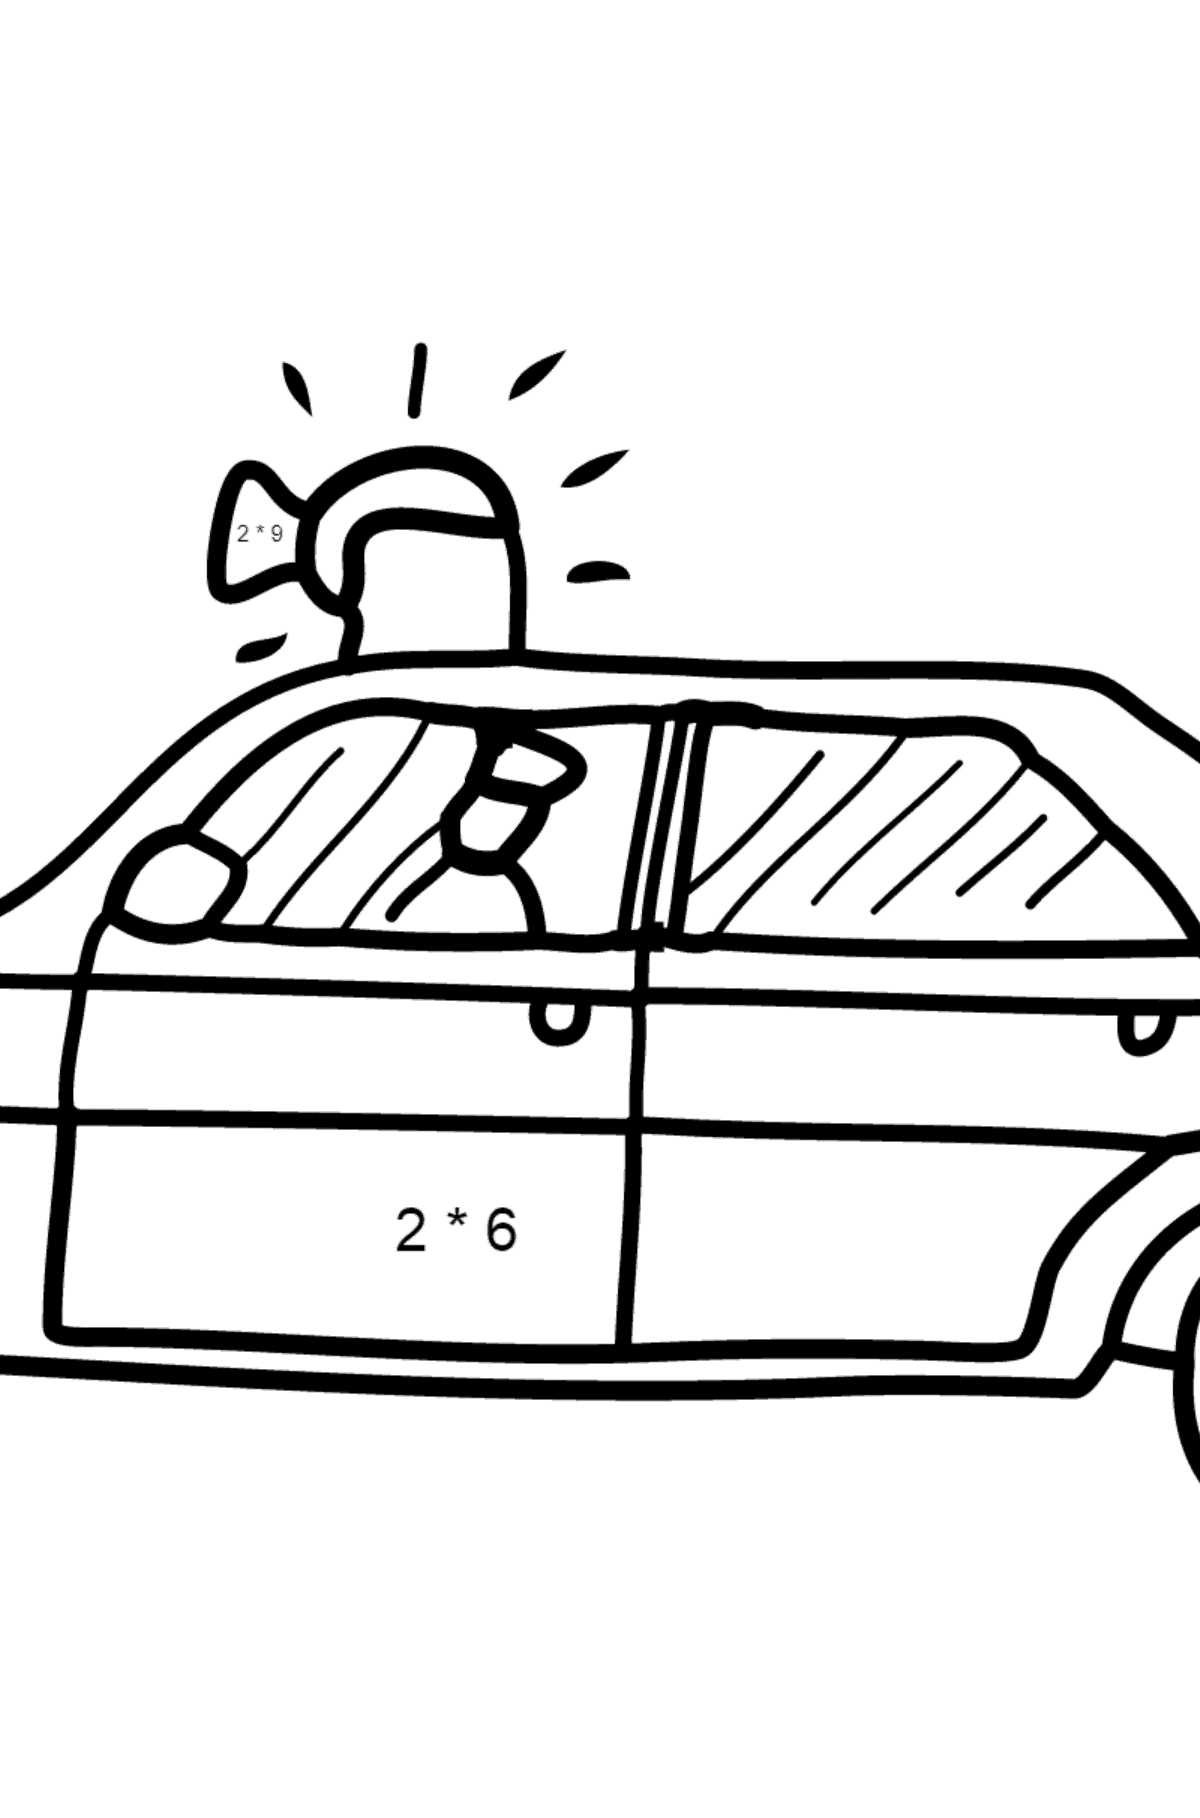 Coloring Page - A Police Car for Children  - Color by Number Multiplication